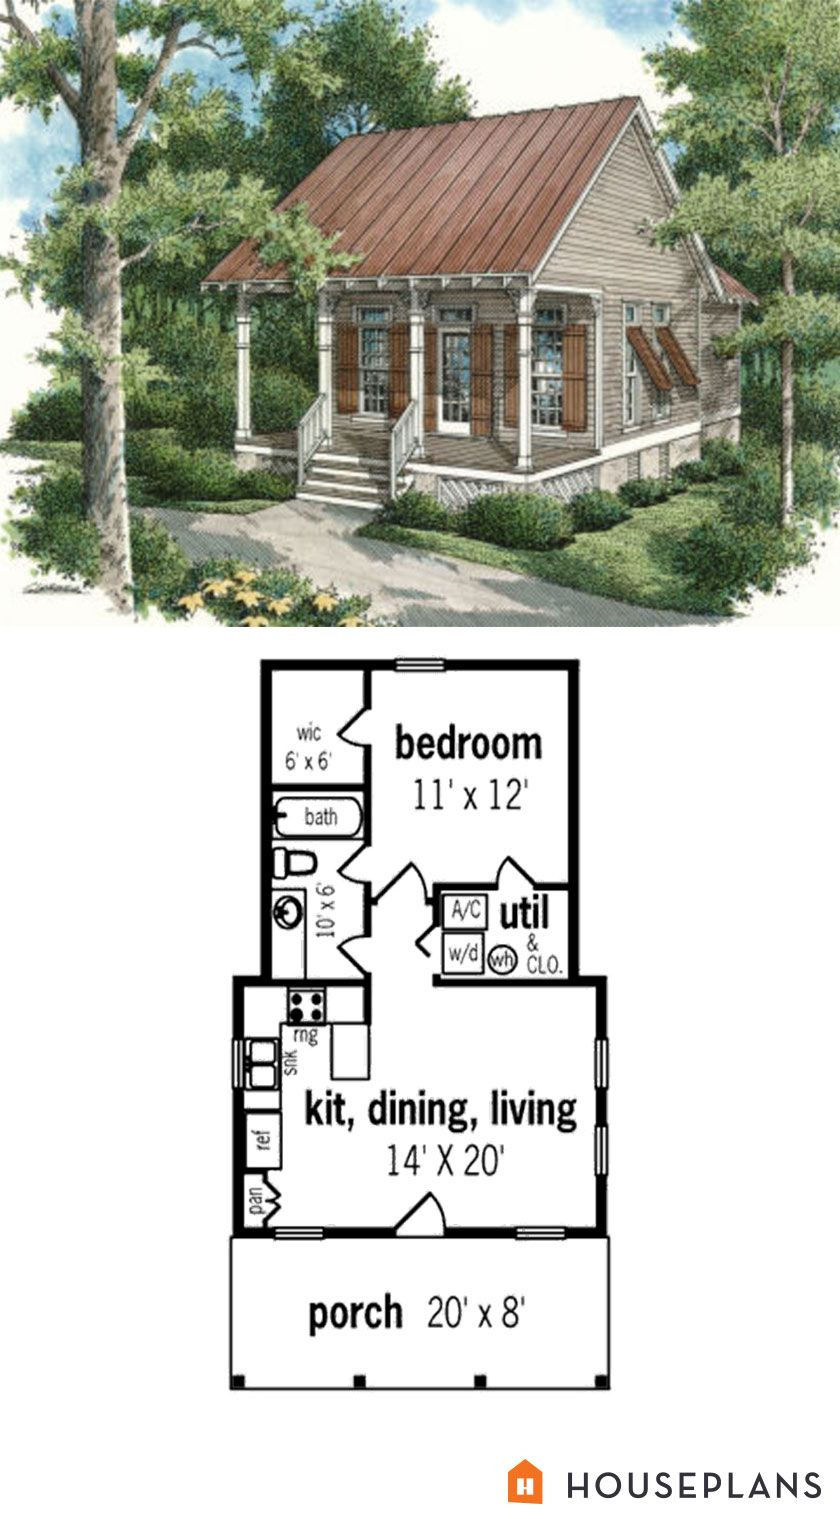 Cottage Style House Plan Inspirational Cottage Style House Plan 1 Beds 1 Baths 569 Sq Ft Plan 45